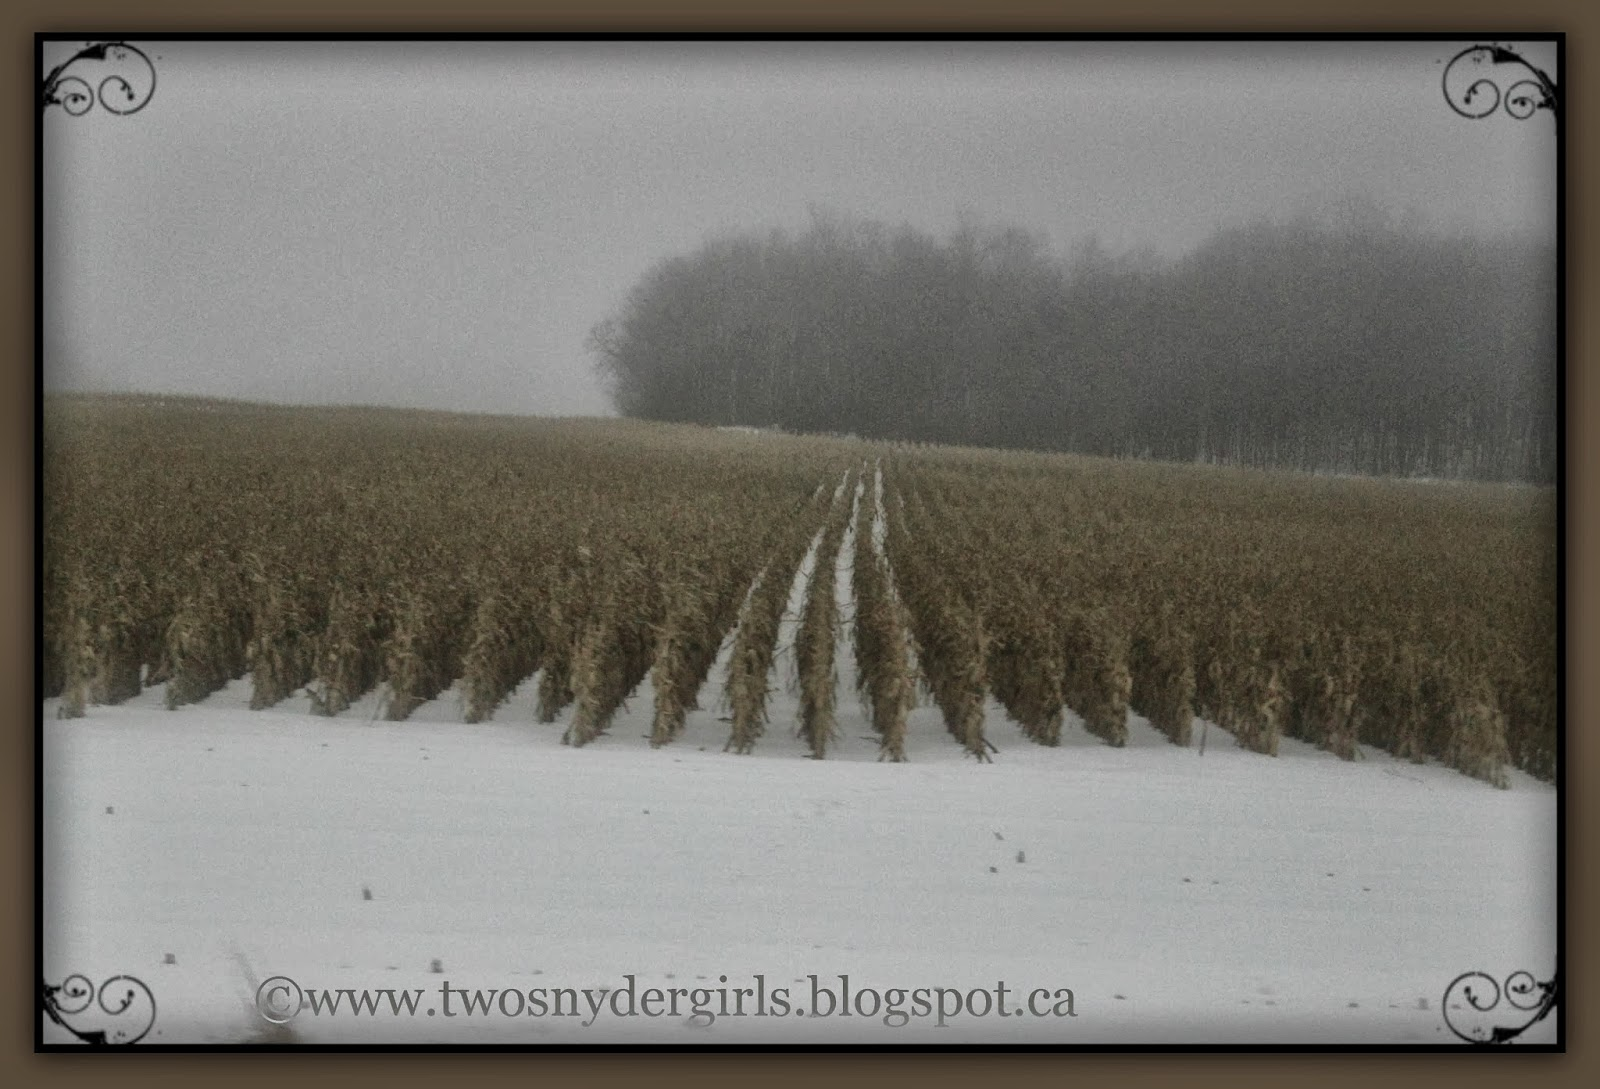 Corn standing in snow covered field